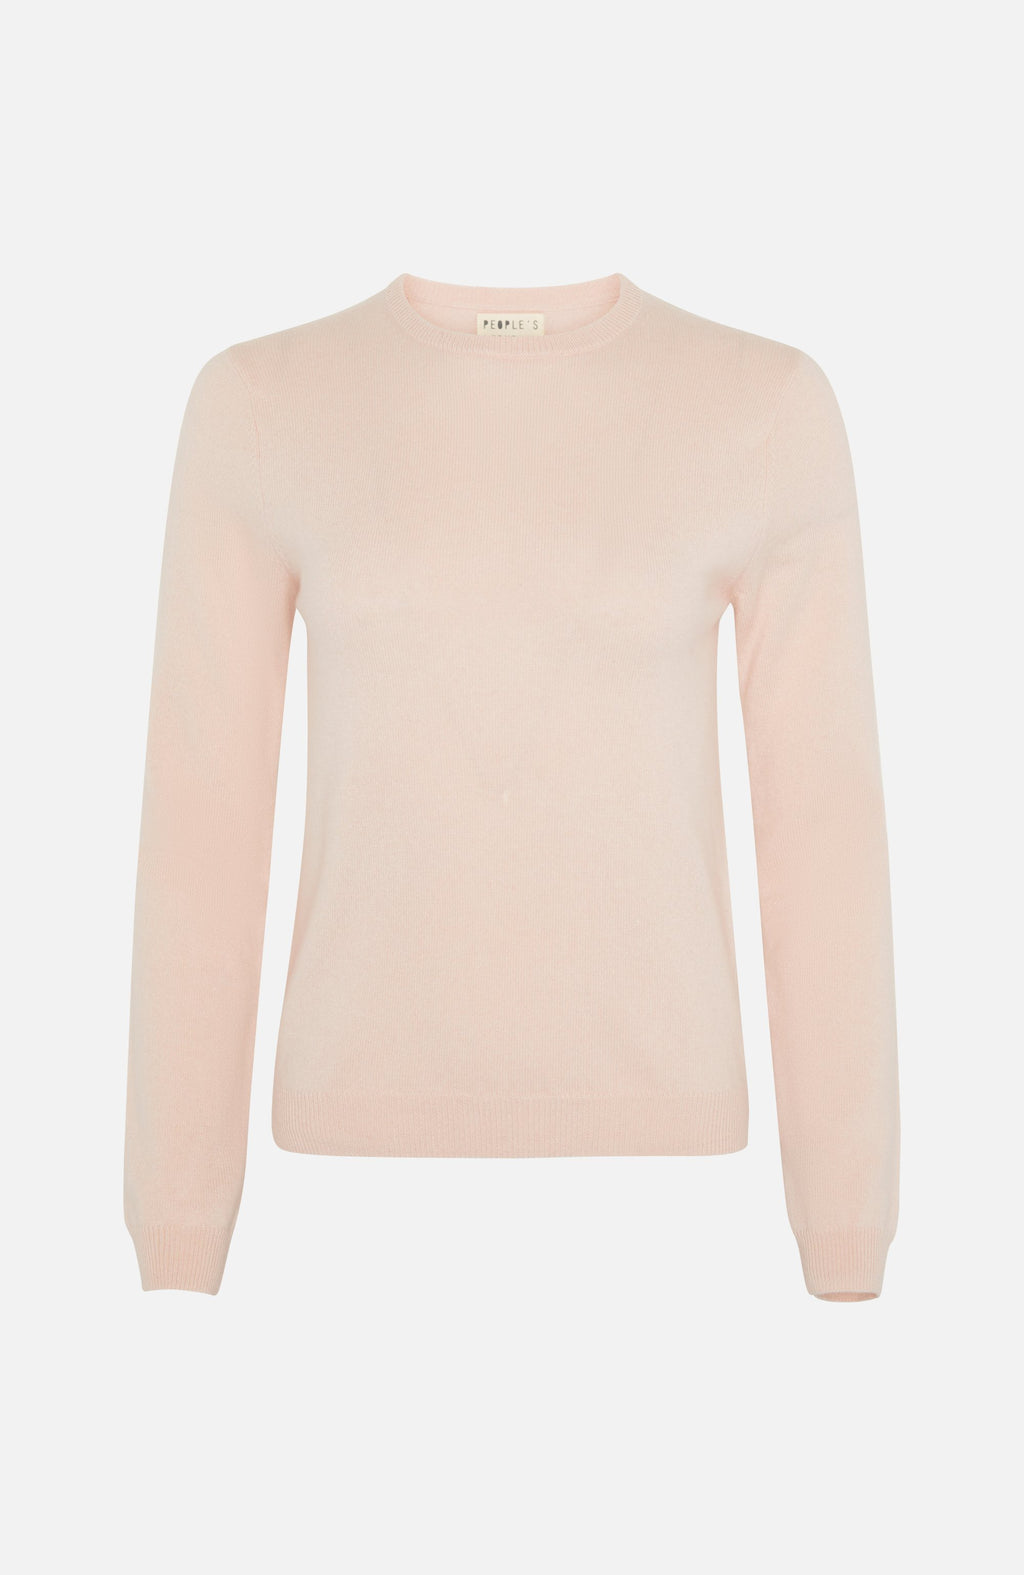 Republic Of Cashmere Round Neck Pink Sweater